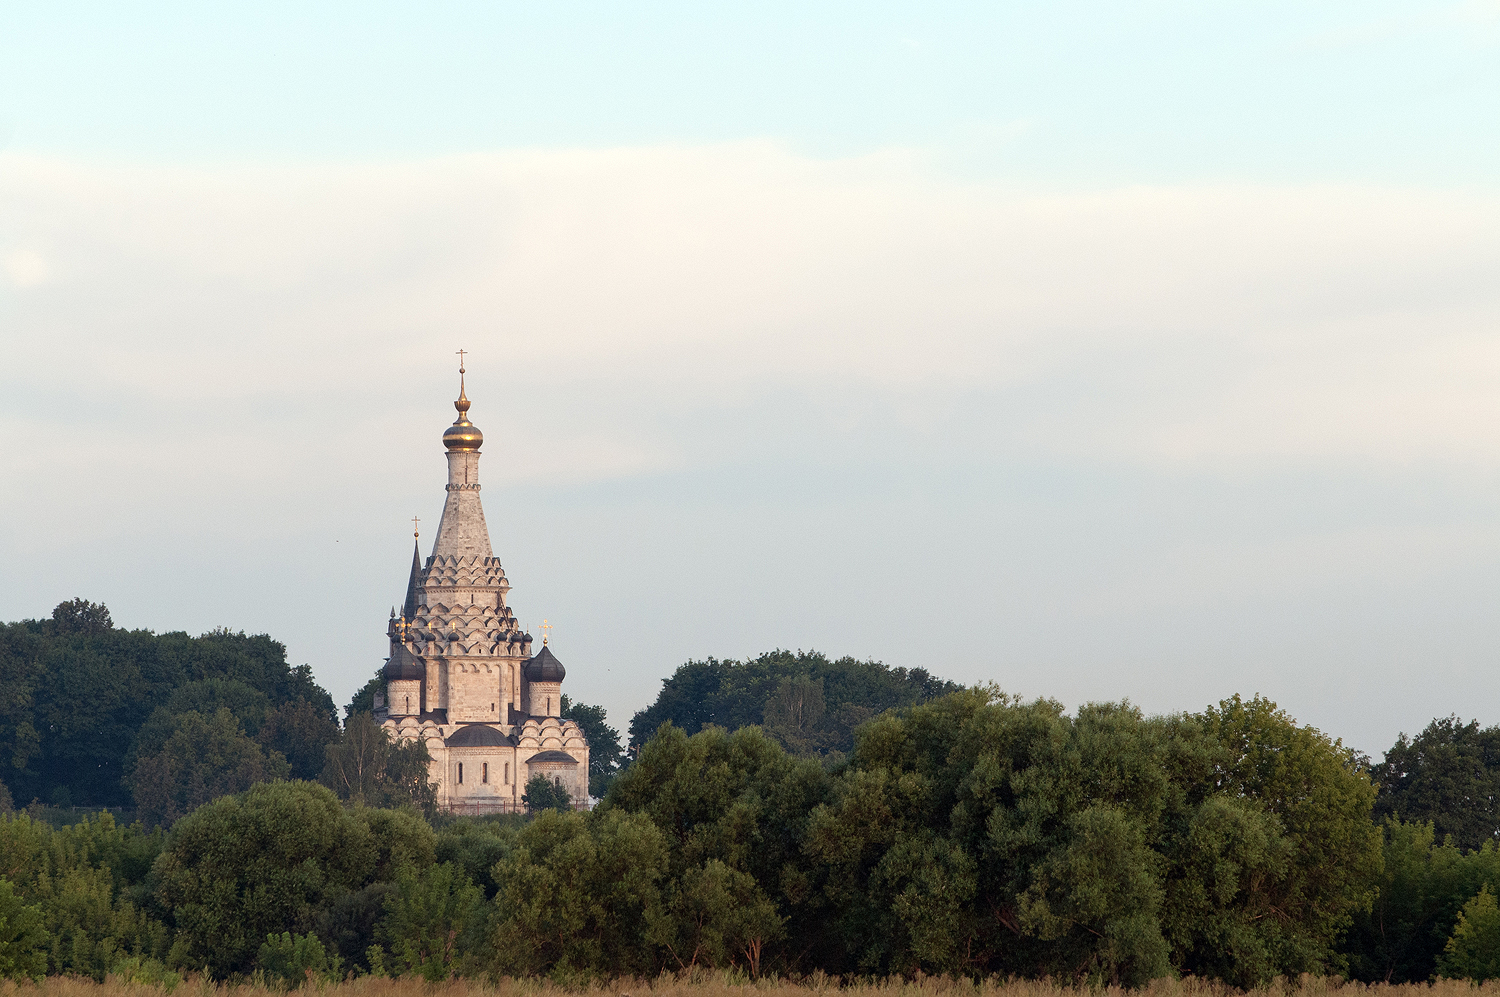 Church of the Transfiguration of the Lord in Ostrov, Russian Federation